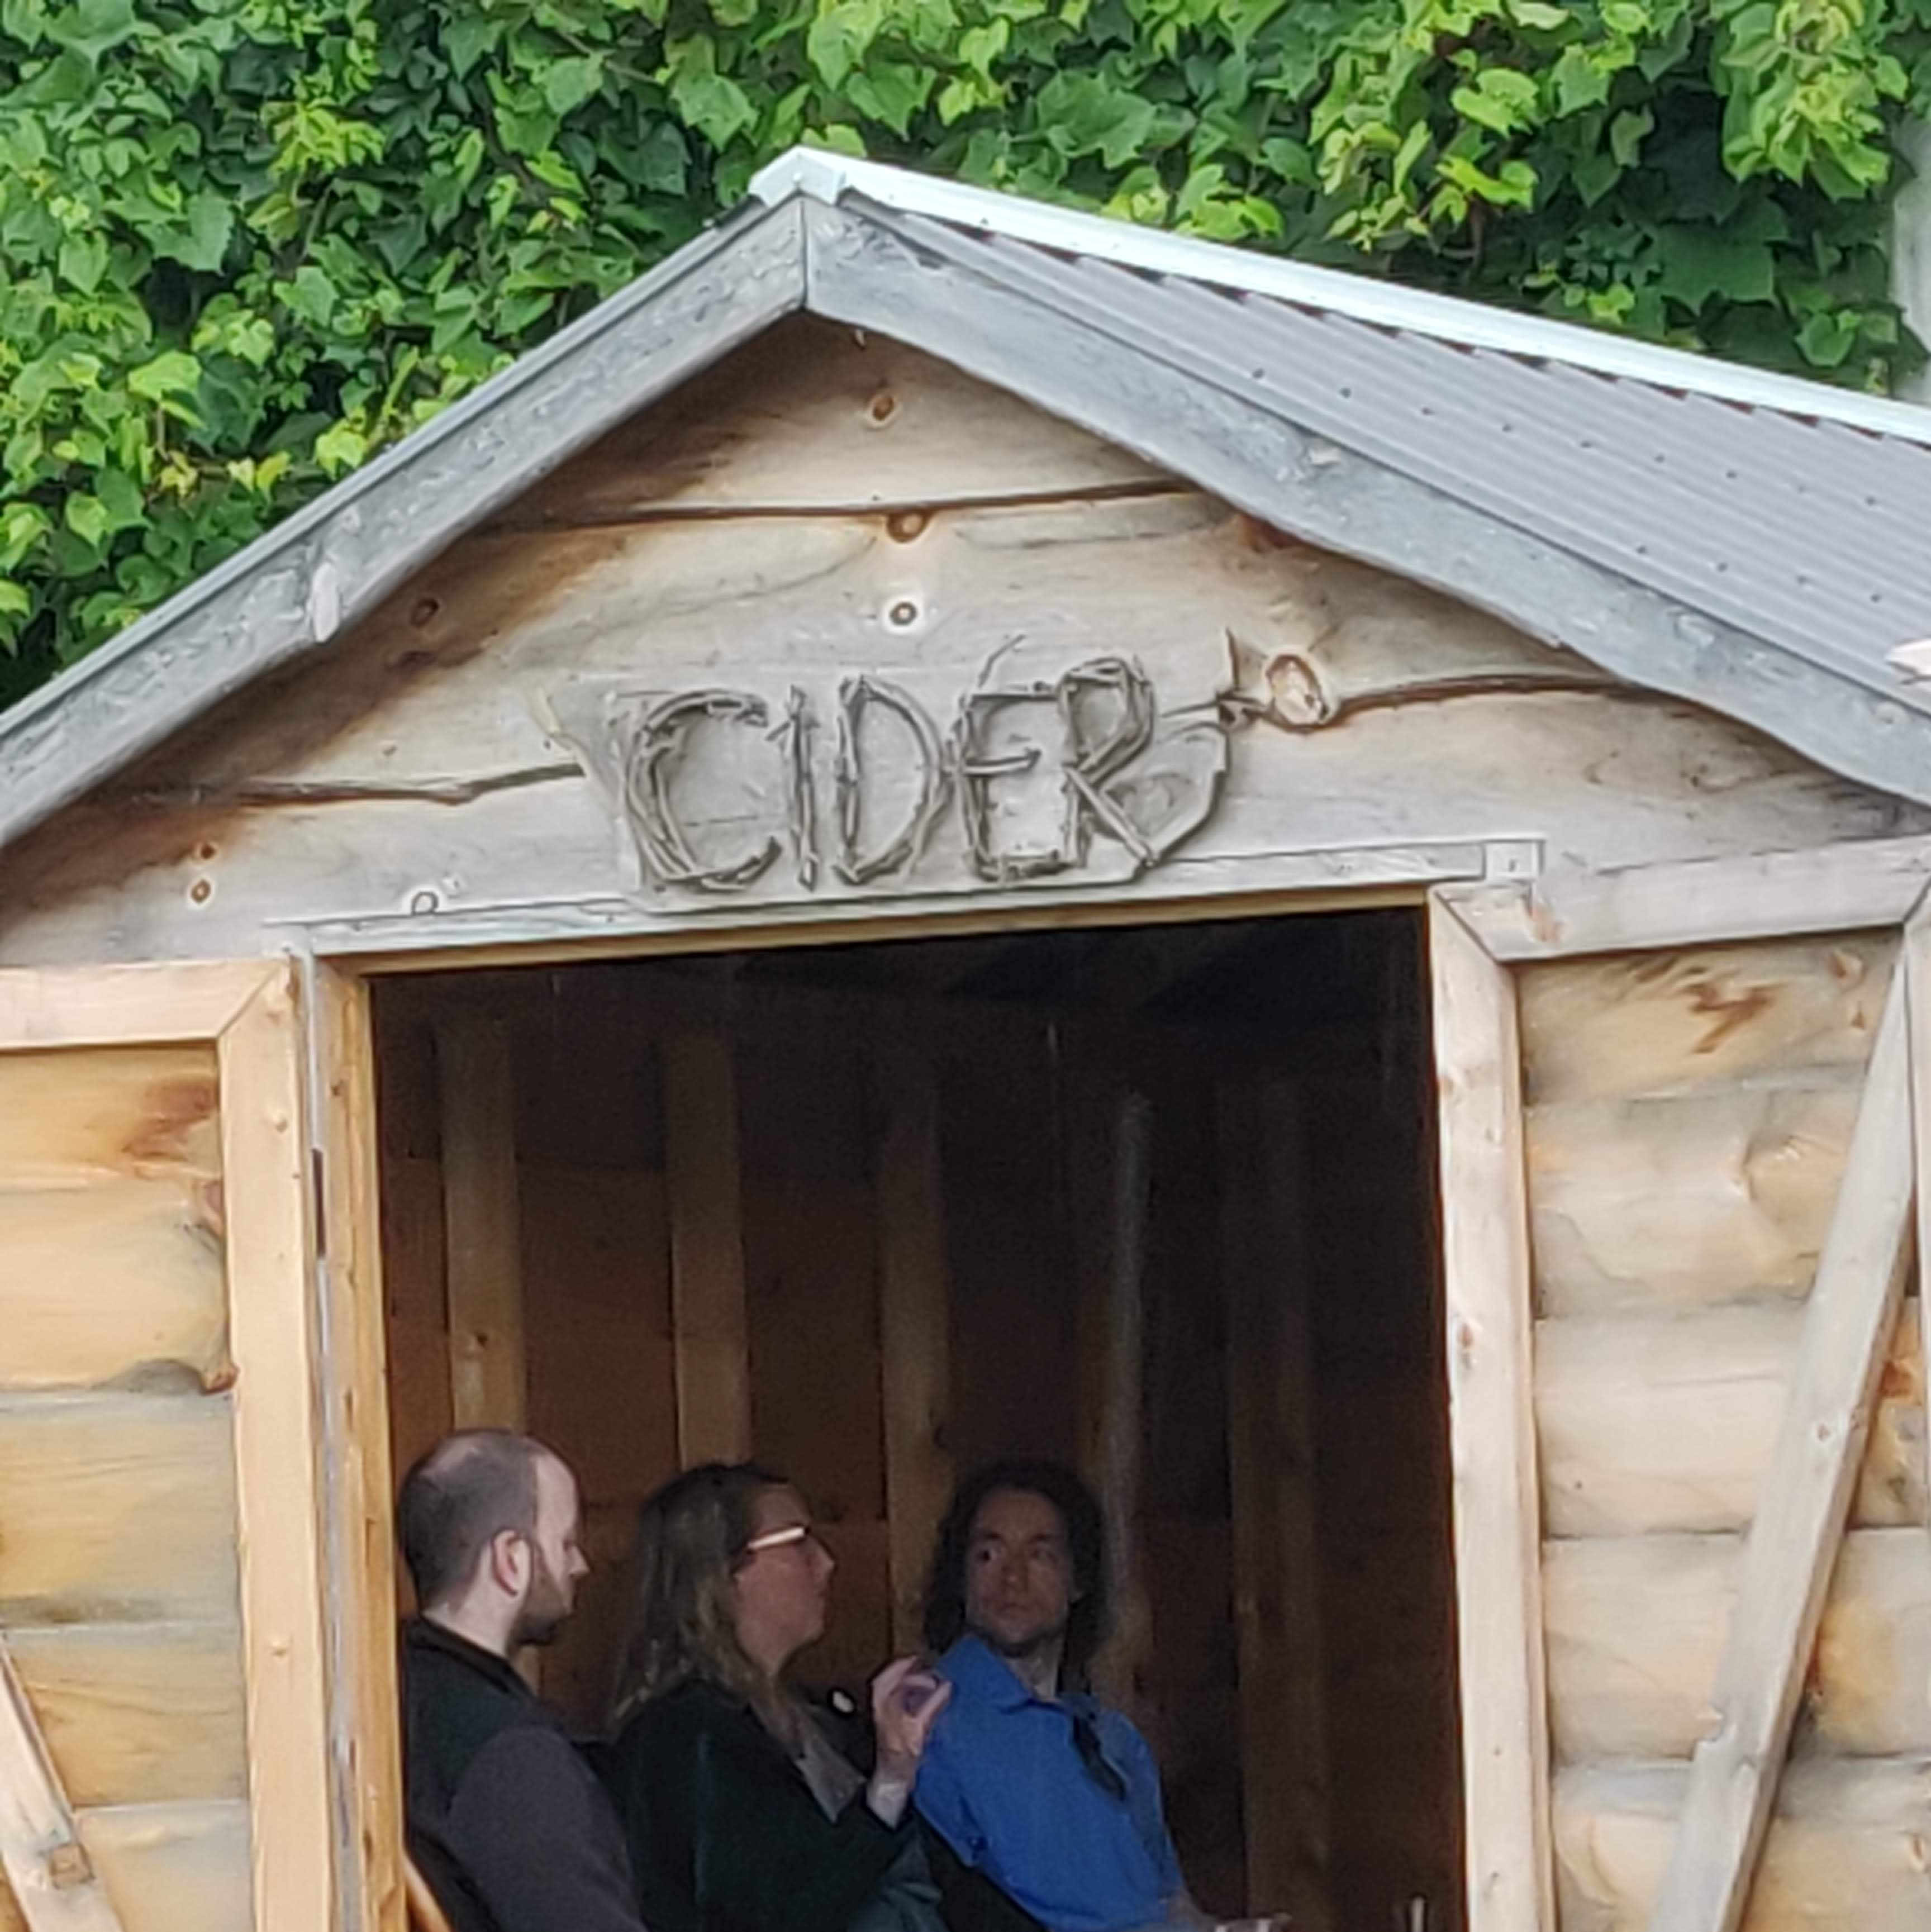 A wood shed with the word Cider crafted out of grape vines over the open door.